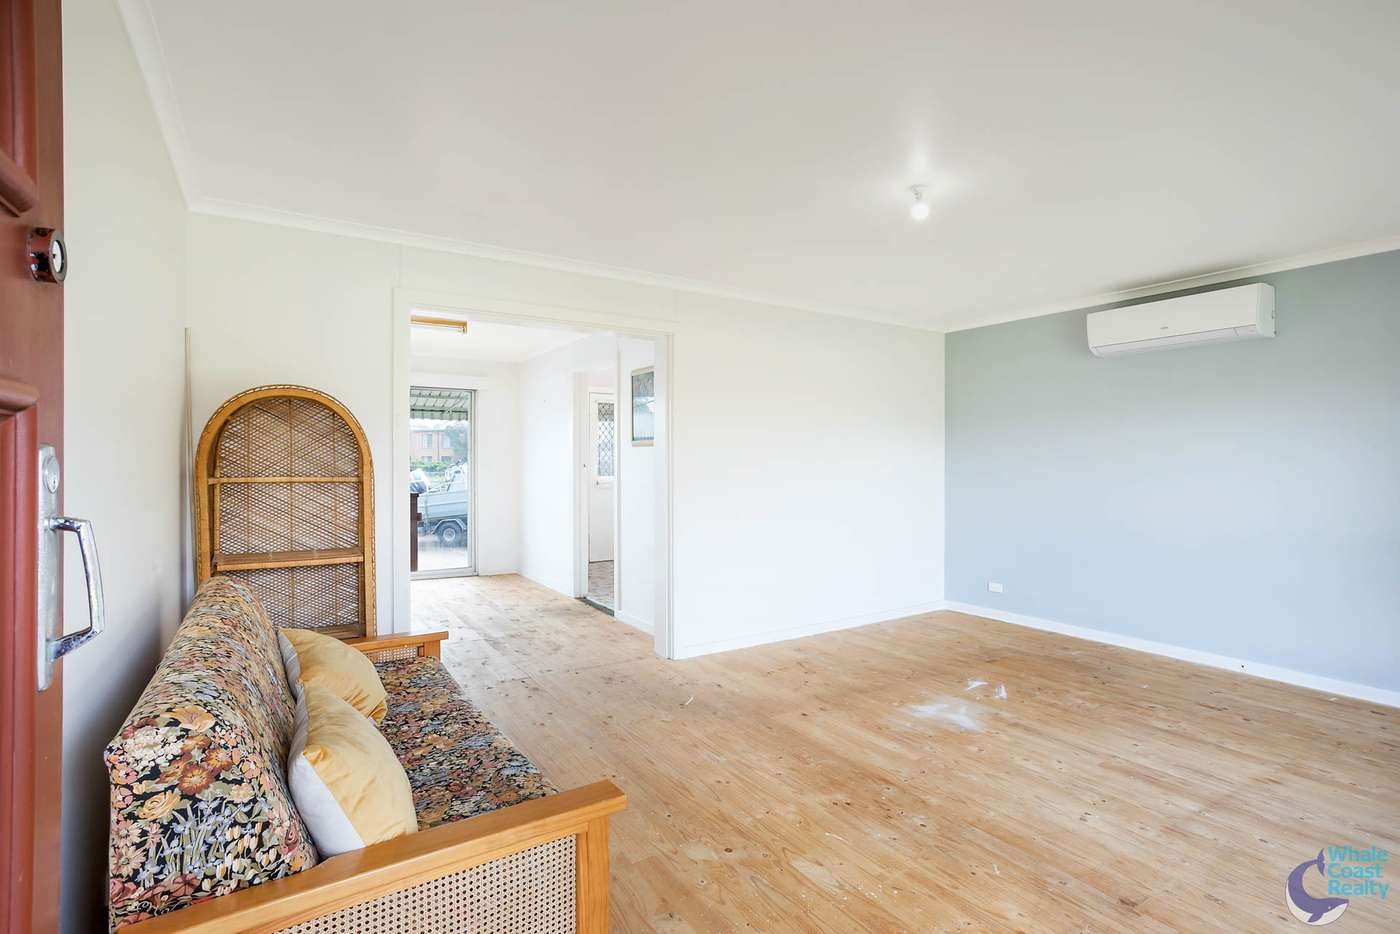 Sixth view of Homely house listing, 2 Hyland Avenue, Narooma NSW 2546